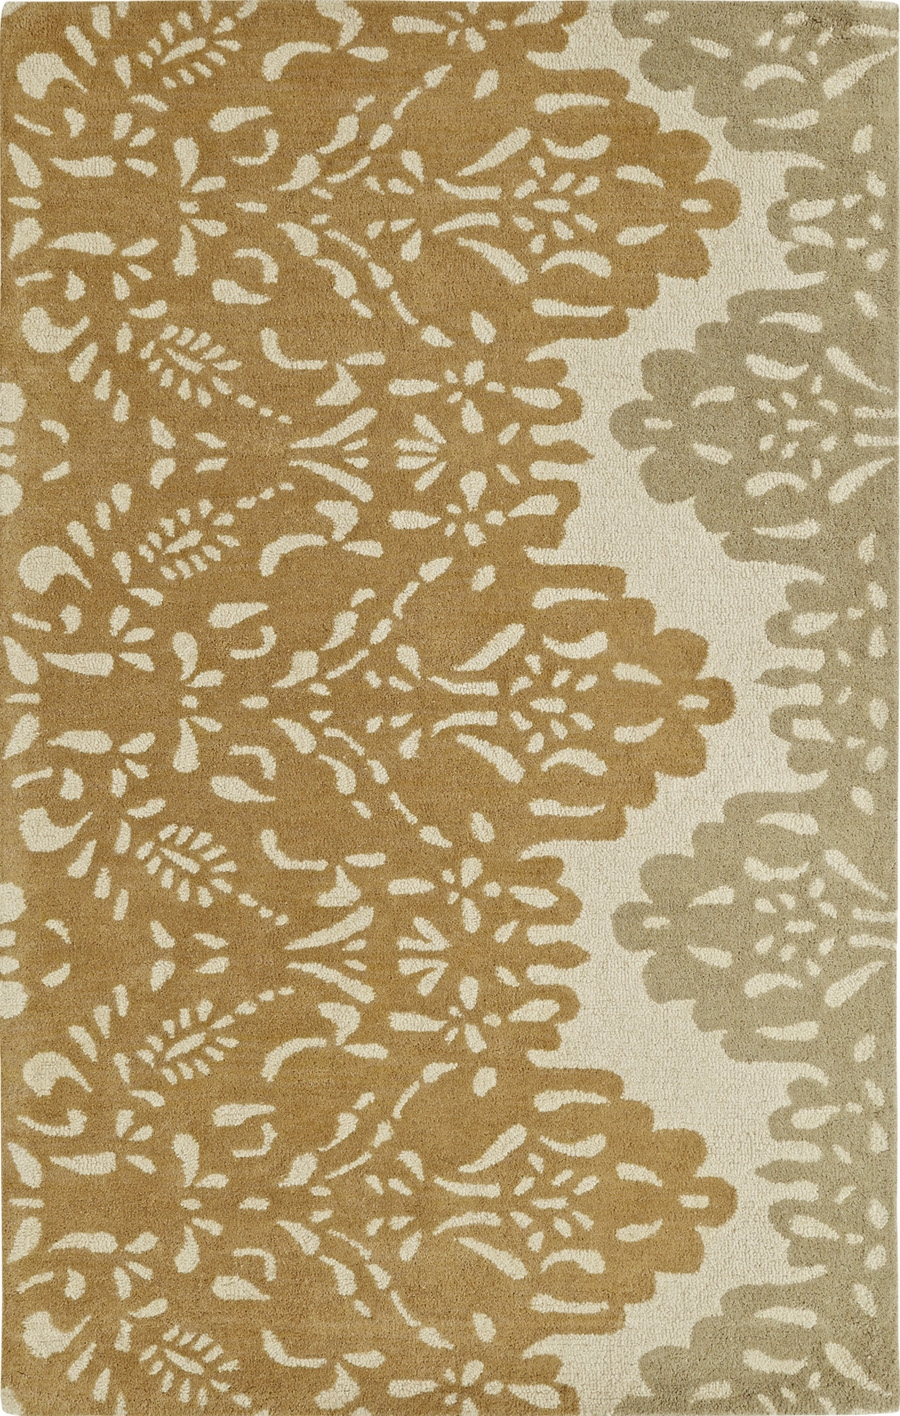 Dynamic Palace 5567 109 Gold Beige Rug